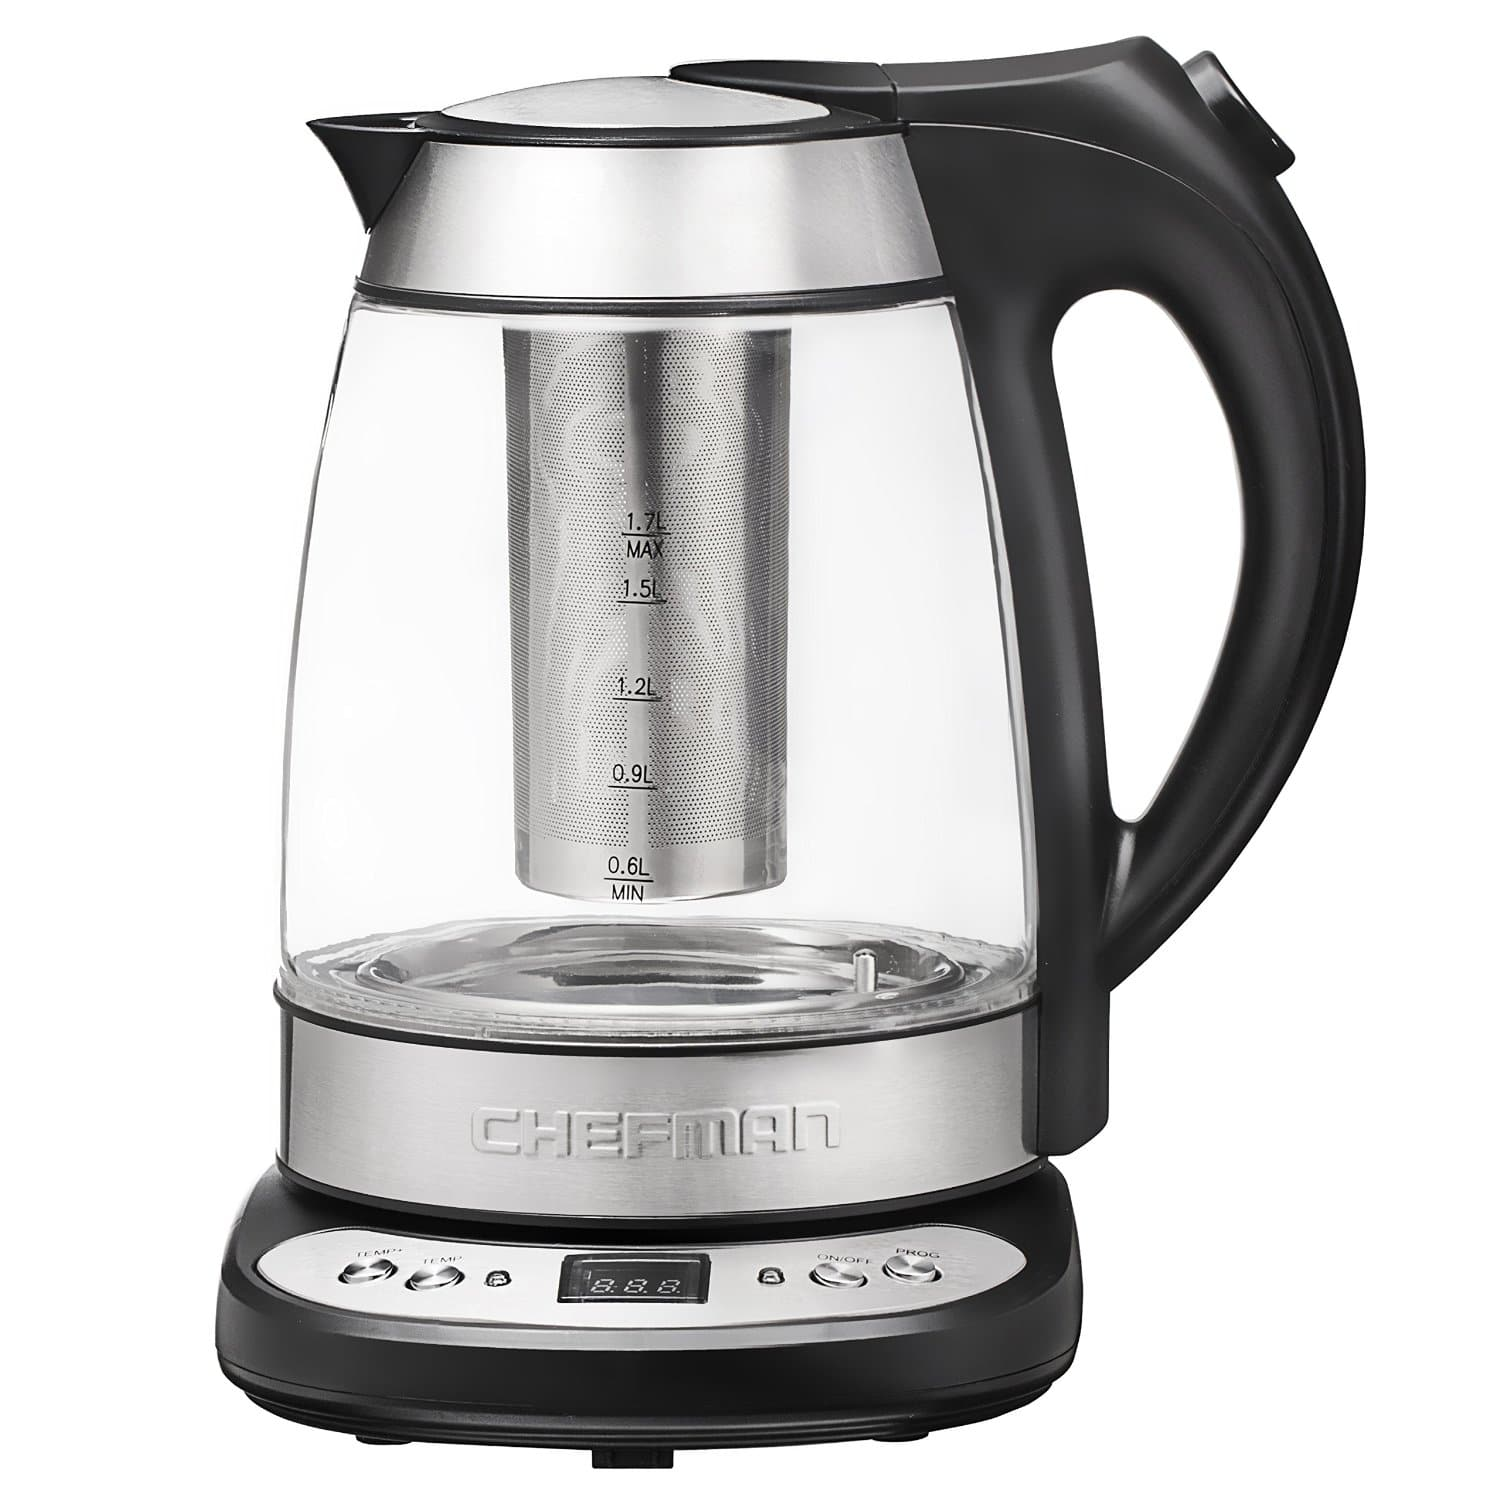 chefman rj11 17 gp electric kettle review ybkitchen